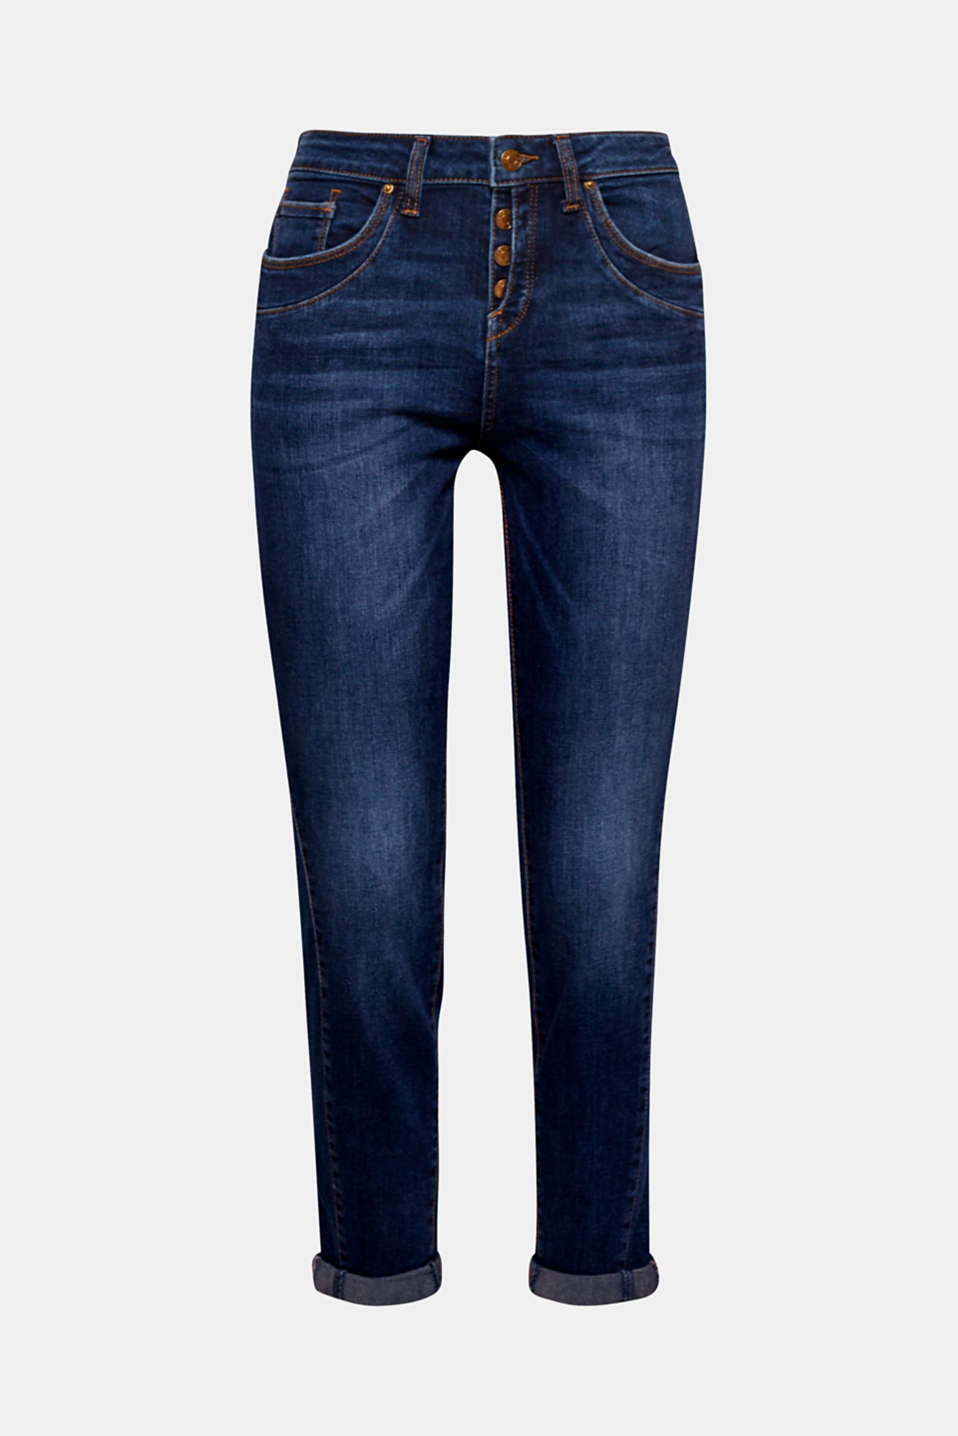 These cropped stretch jeans with a semi-concealed button placket are the perfect pair for spring!